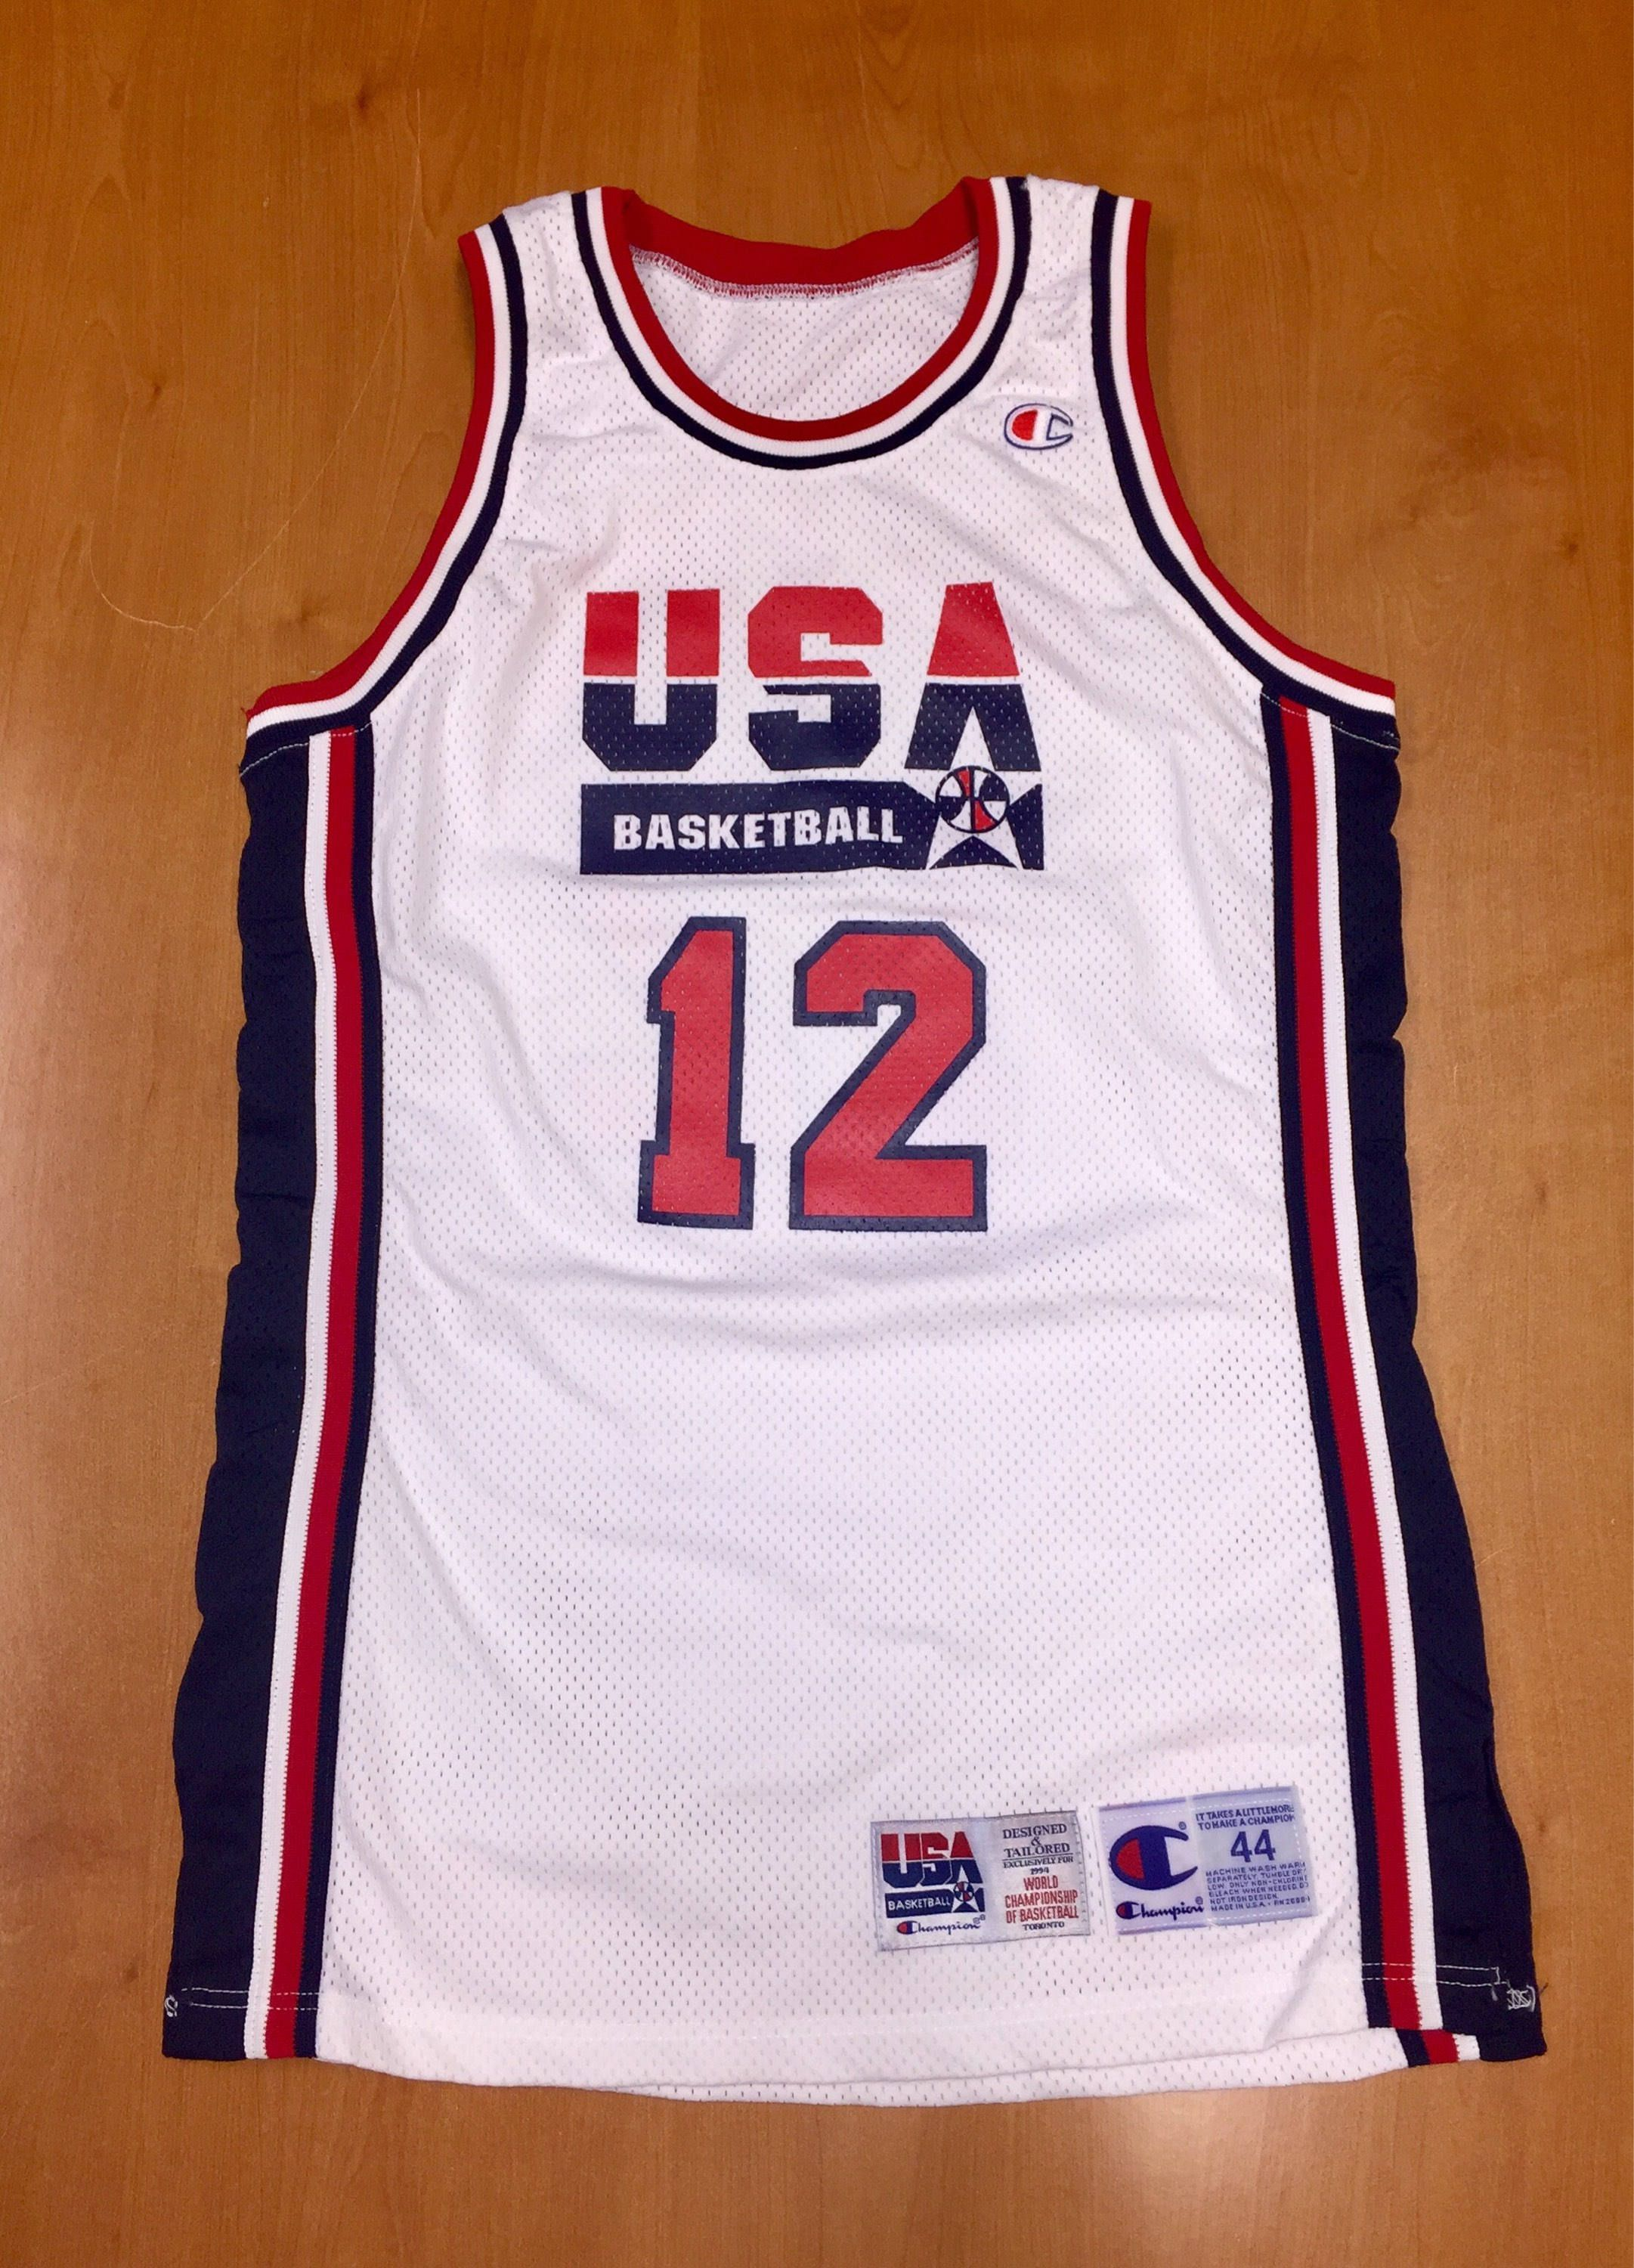 20a79704577 Vintage 1994 Dominique Wilkins Dream Team USA Authentic Champion Jersey  Size 44 pro cut michael jordan penny hardaway charles barkley nba by ...